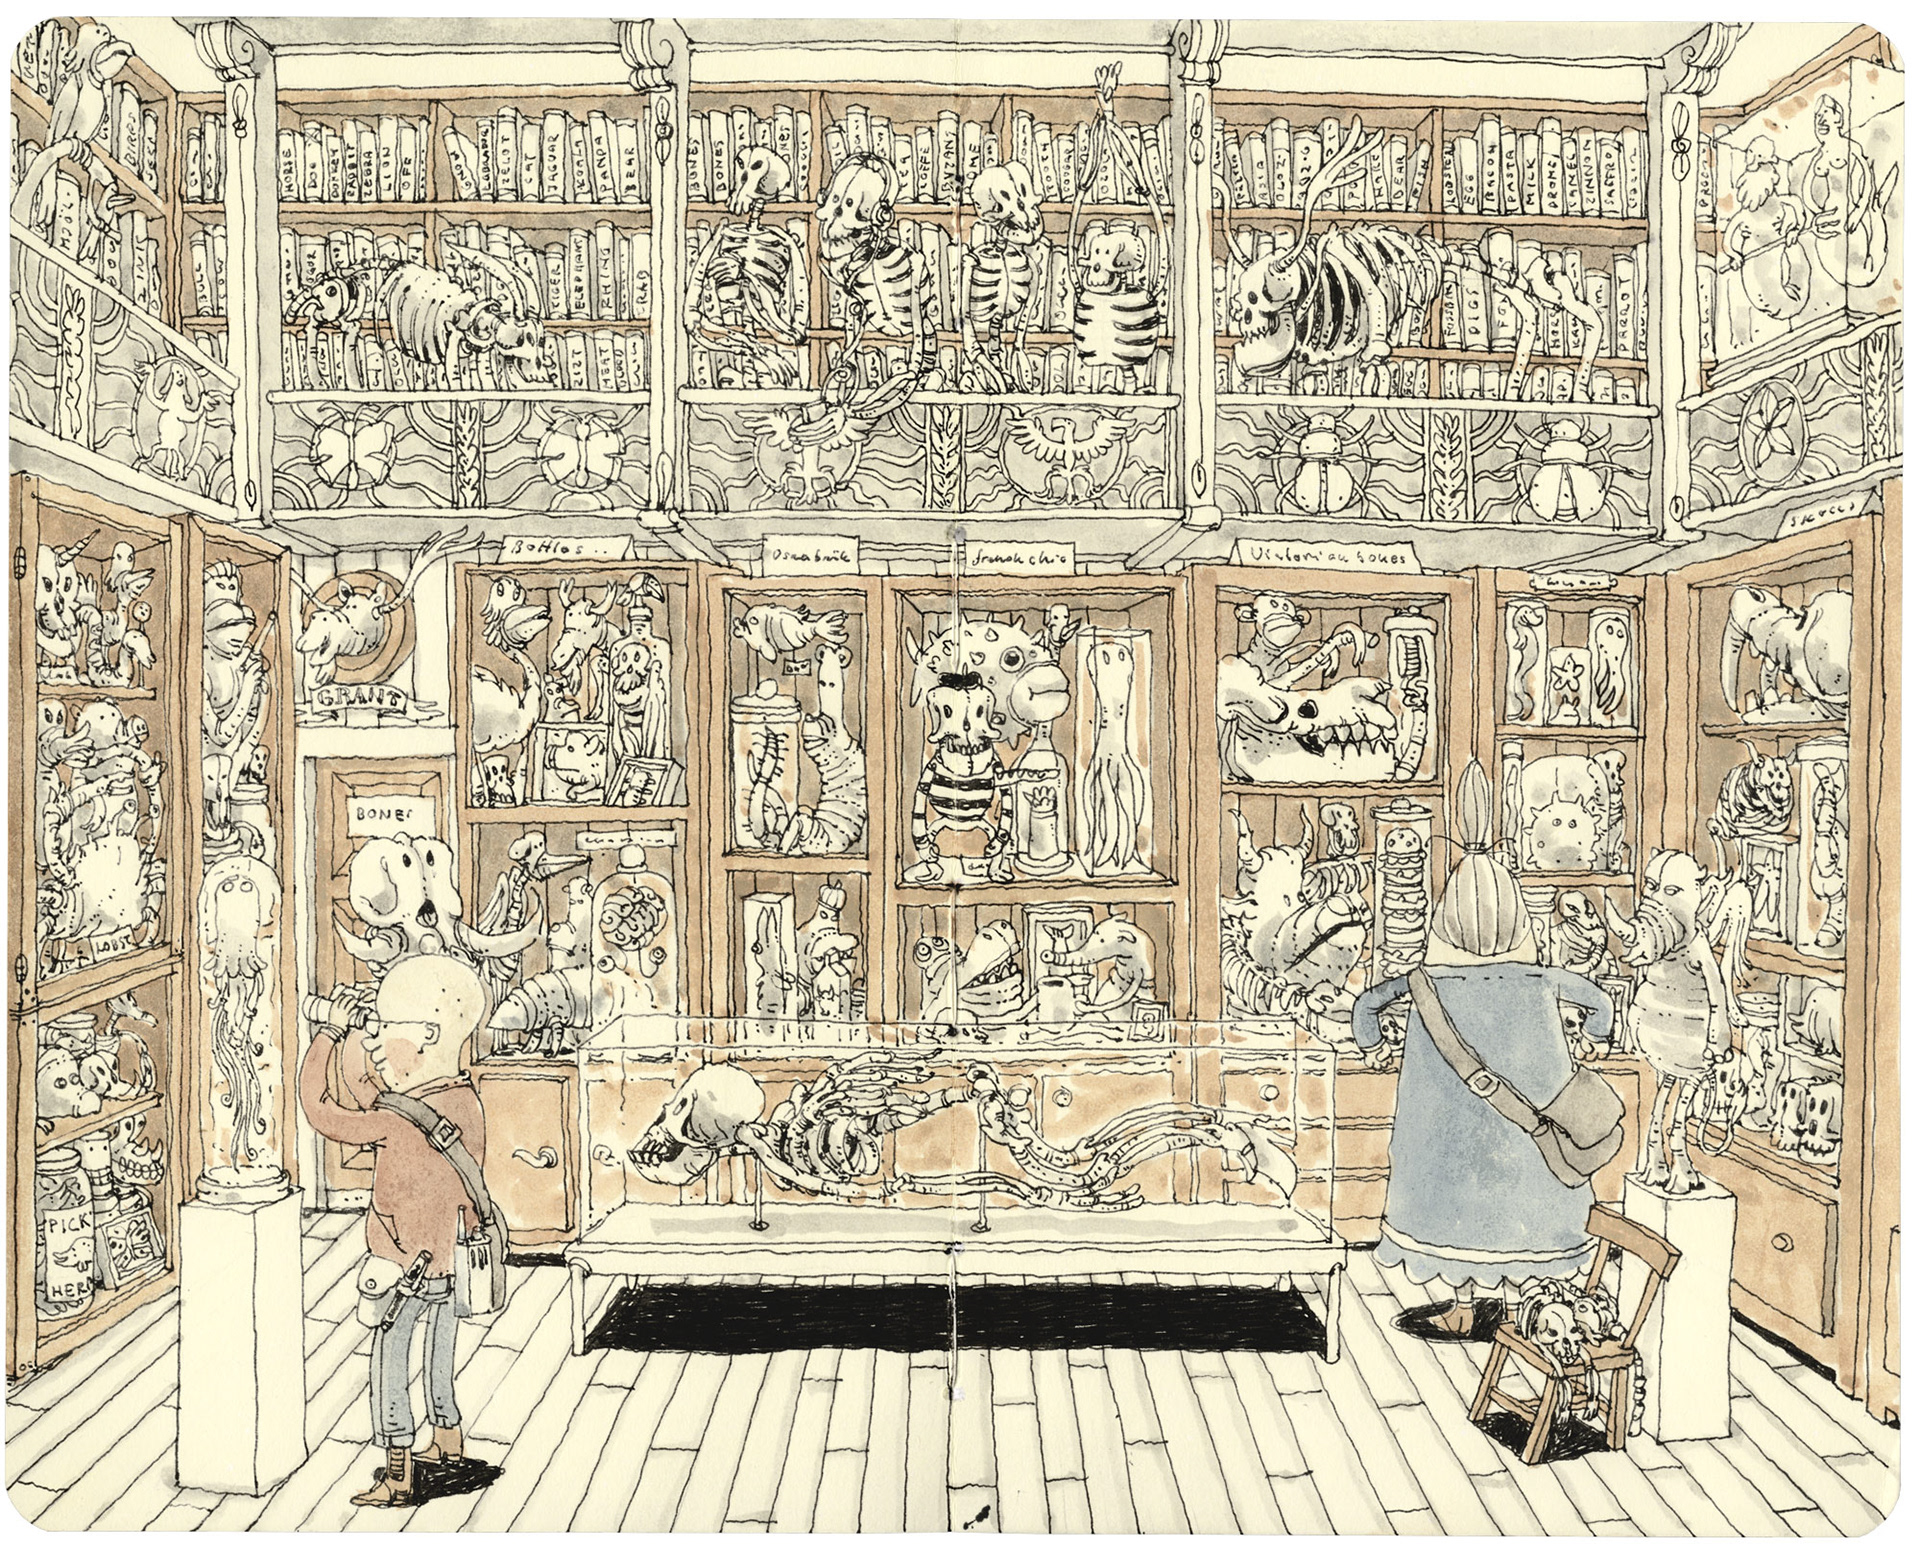 Sprawling Pen Illustrations in Sketchbooks by Mattias Adolfsson Incite the Wild and Absurd